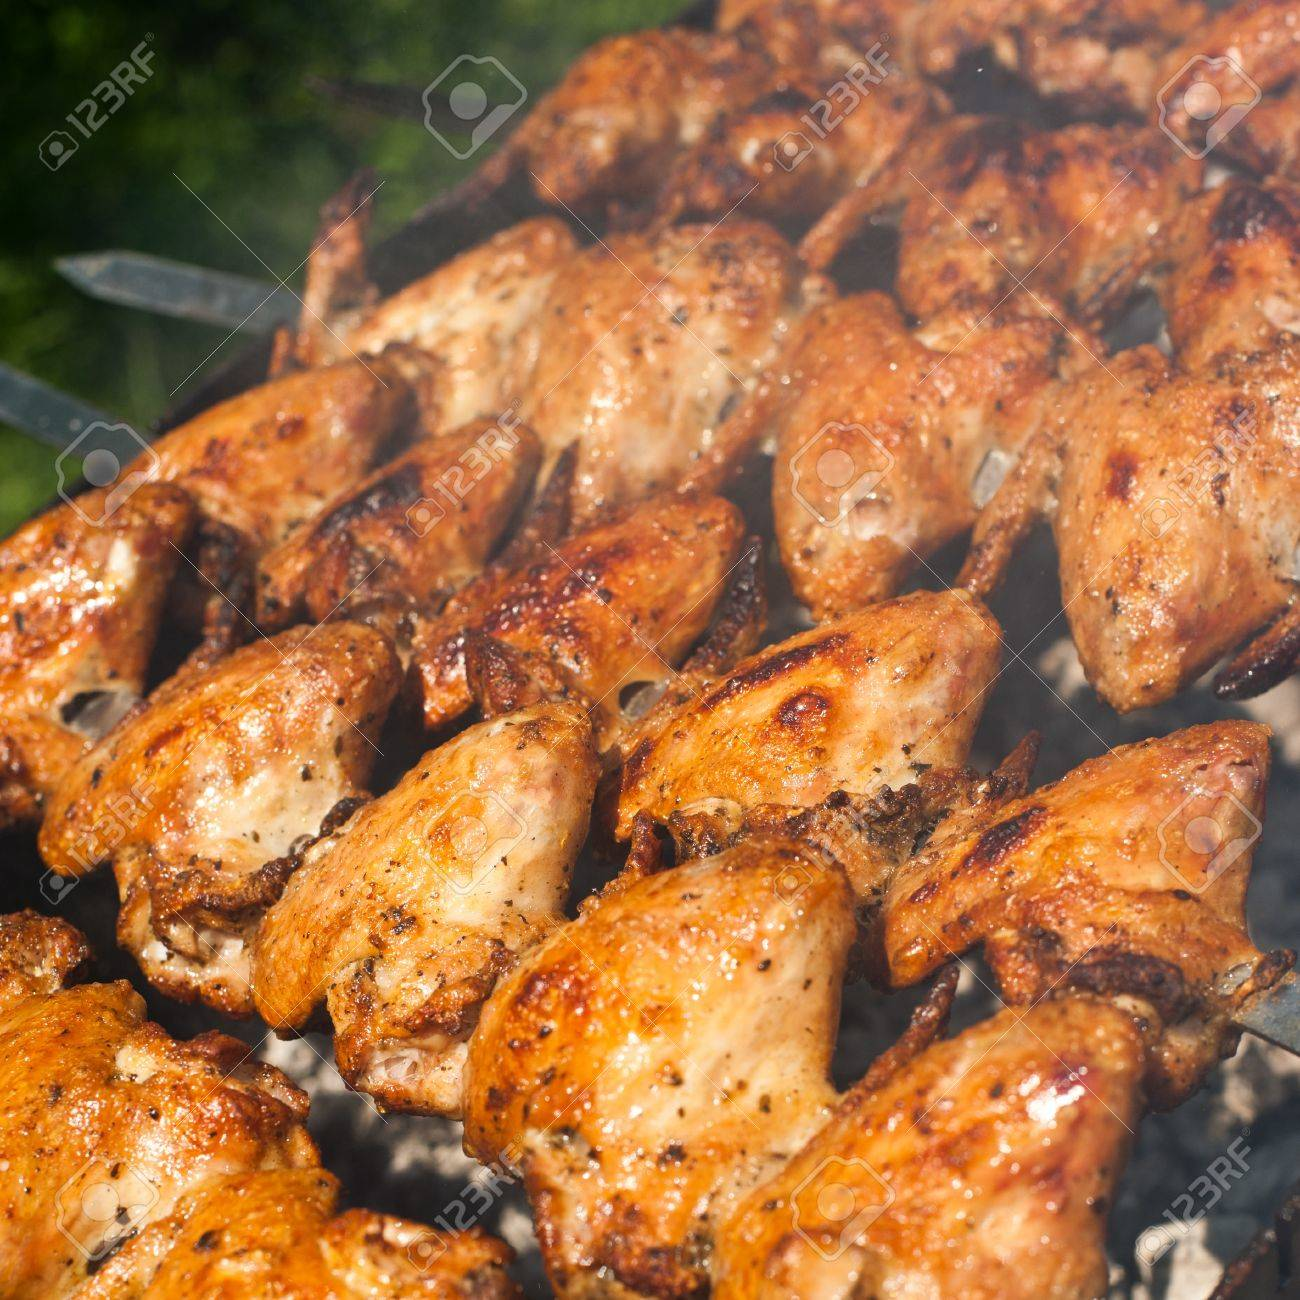 Cooking delicious juicy chicken wings at outdoors grill Stock Photo - 20954734